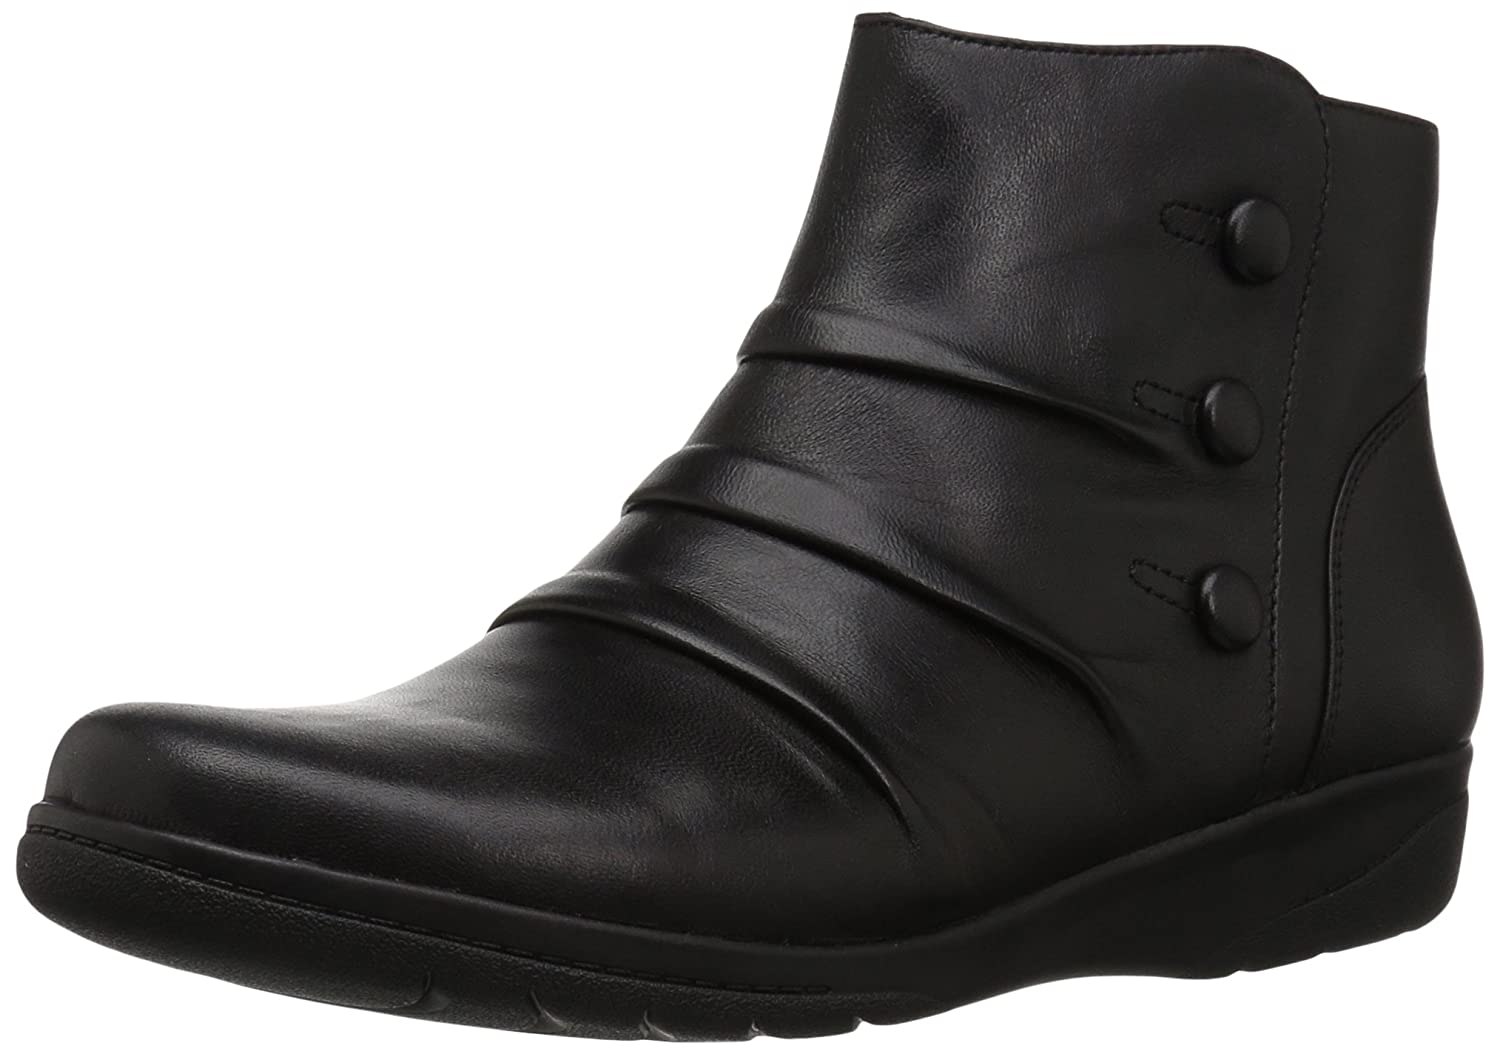 CLARKS Women's Cheyn Anne Boot B01N2TKNXN 8 B(M) US|Black